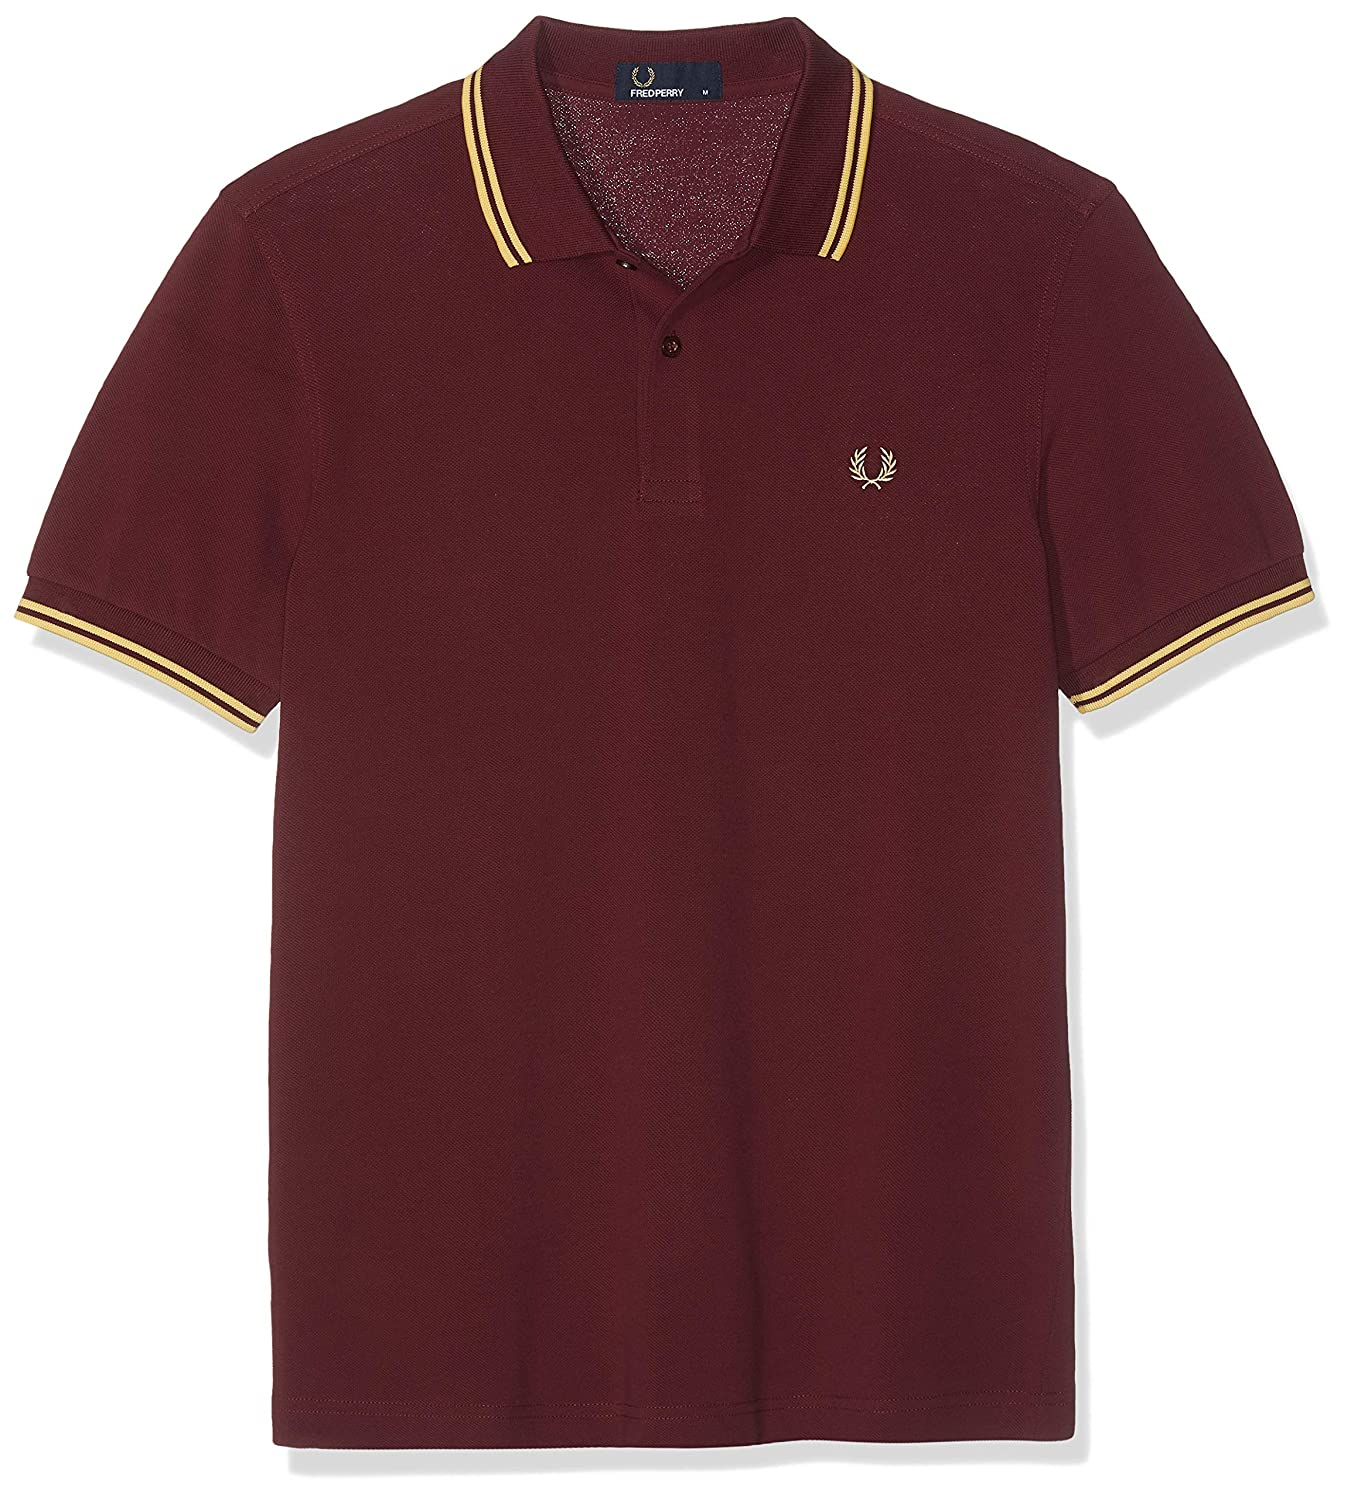 c4c25512a Amazon.com  Fred Perry Men s Twin Tipped Shirt  Fred Perry  Clothing